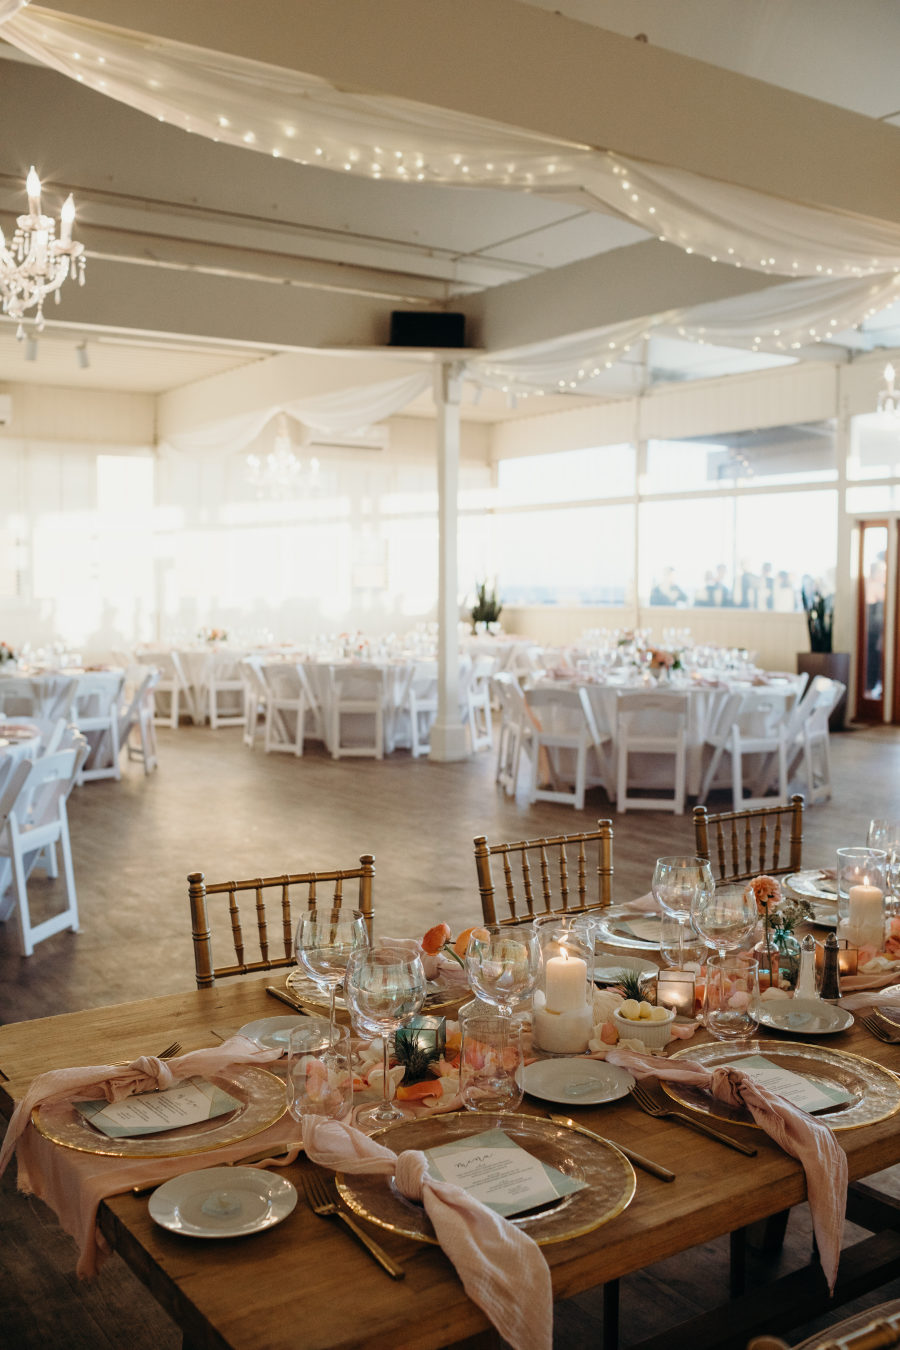 The tables were decorated with pastel blooms, gold rim chargers, blush napkins and candles